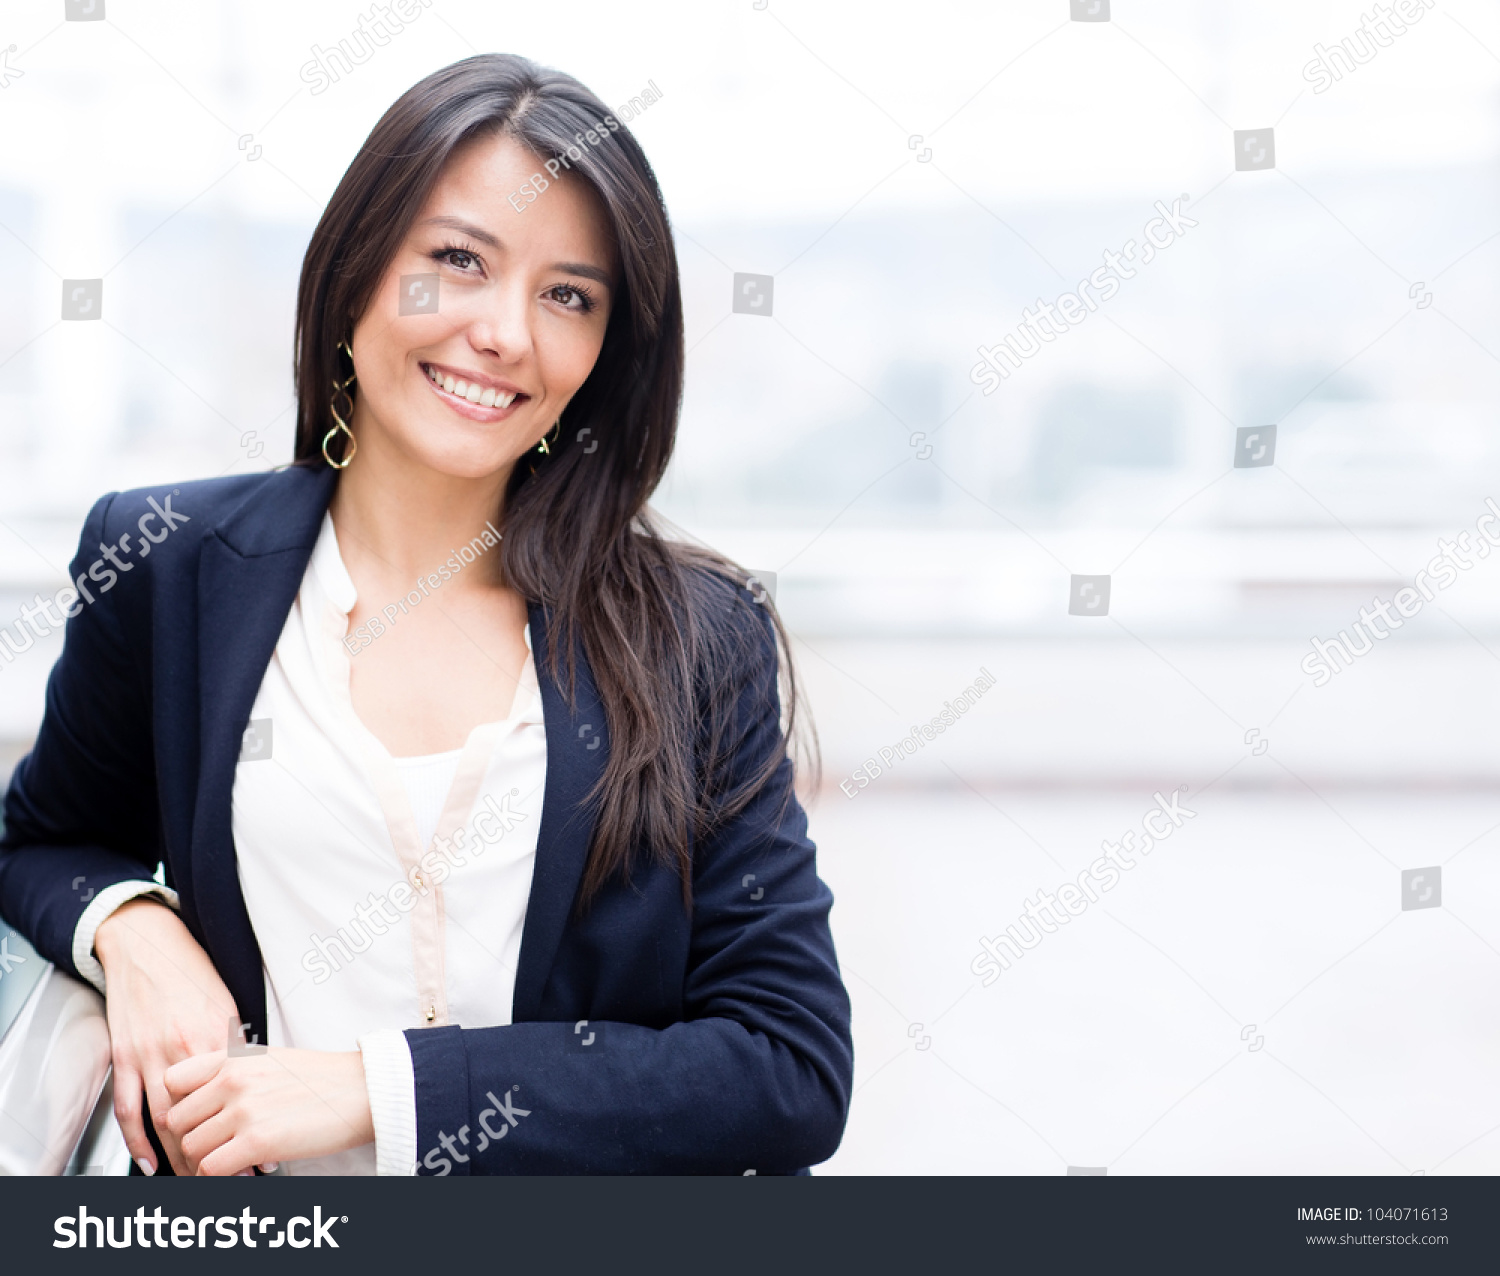 successful business w looking confident smiling stock photo successful business w looking confident and smiling